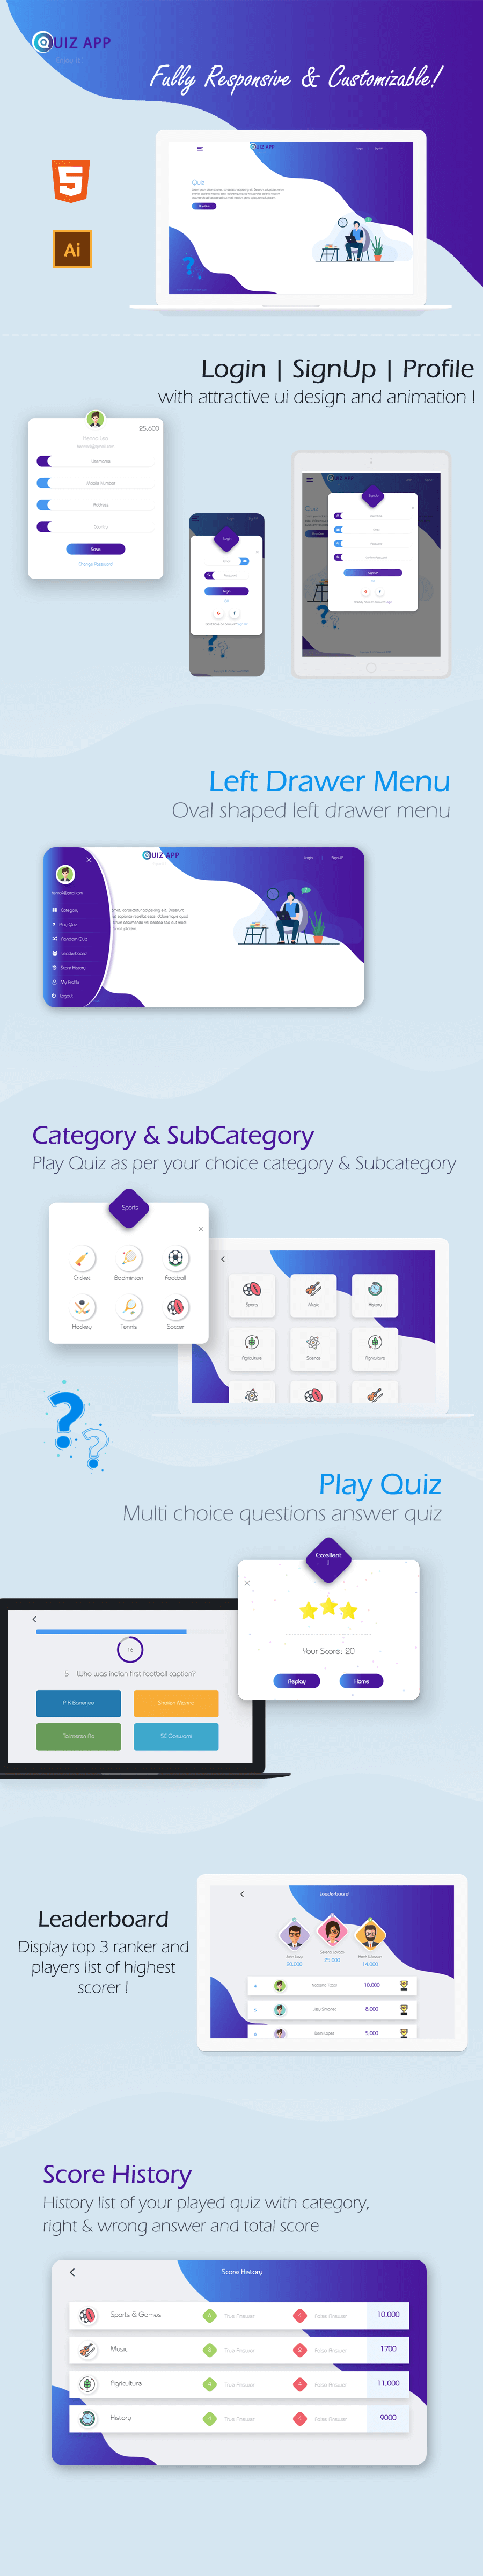 quiz-display-img.png